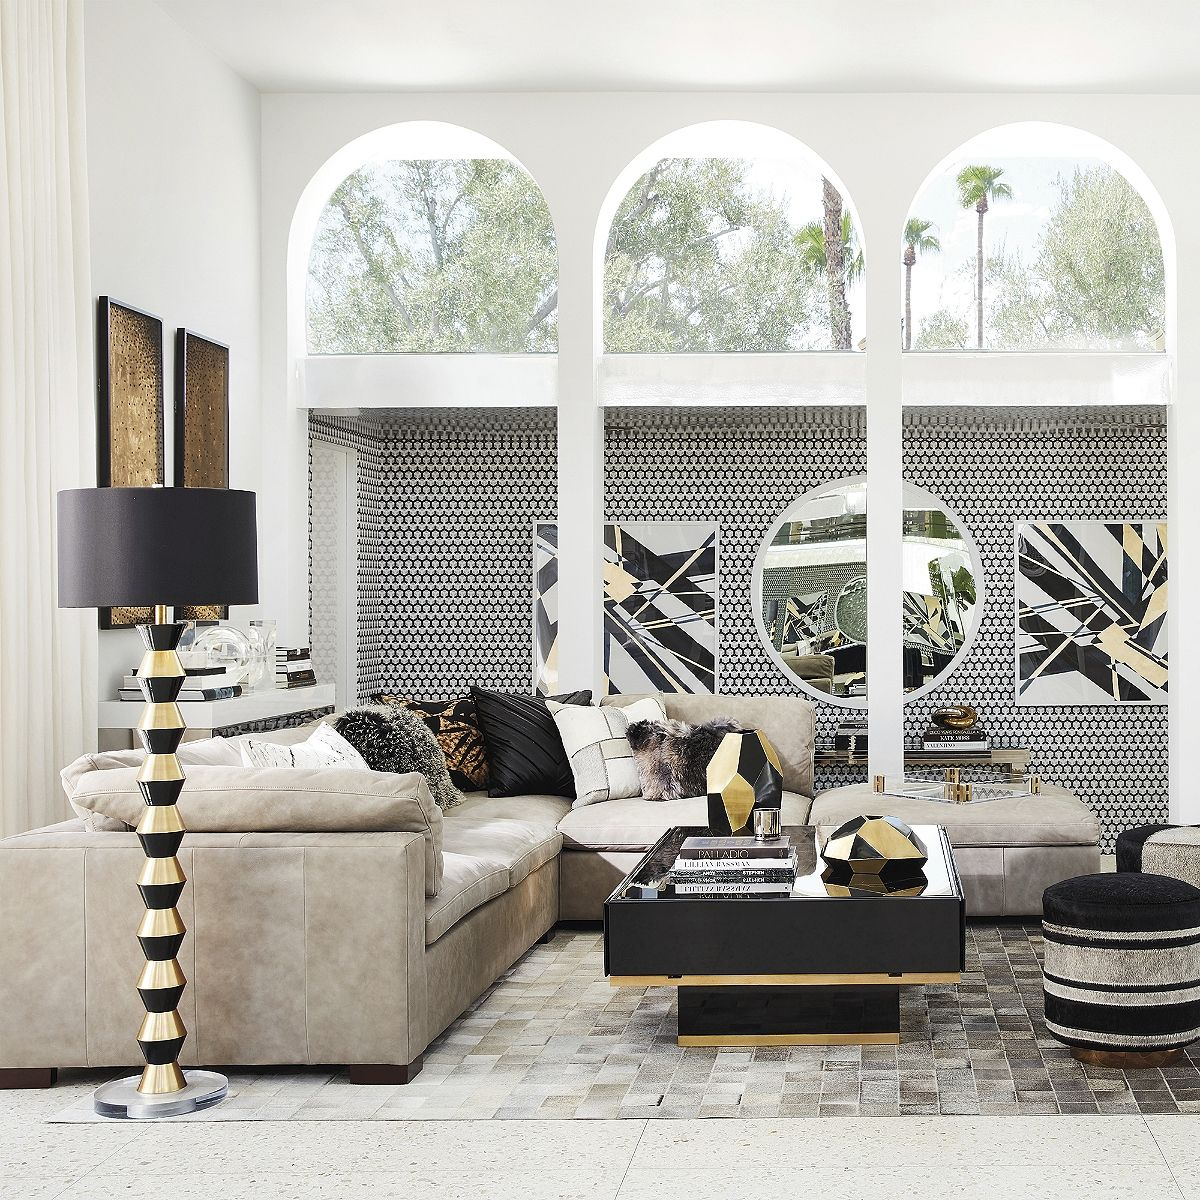 The sumptuous proportions and modern aesthetic of